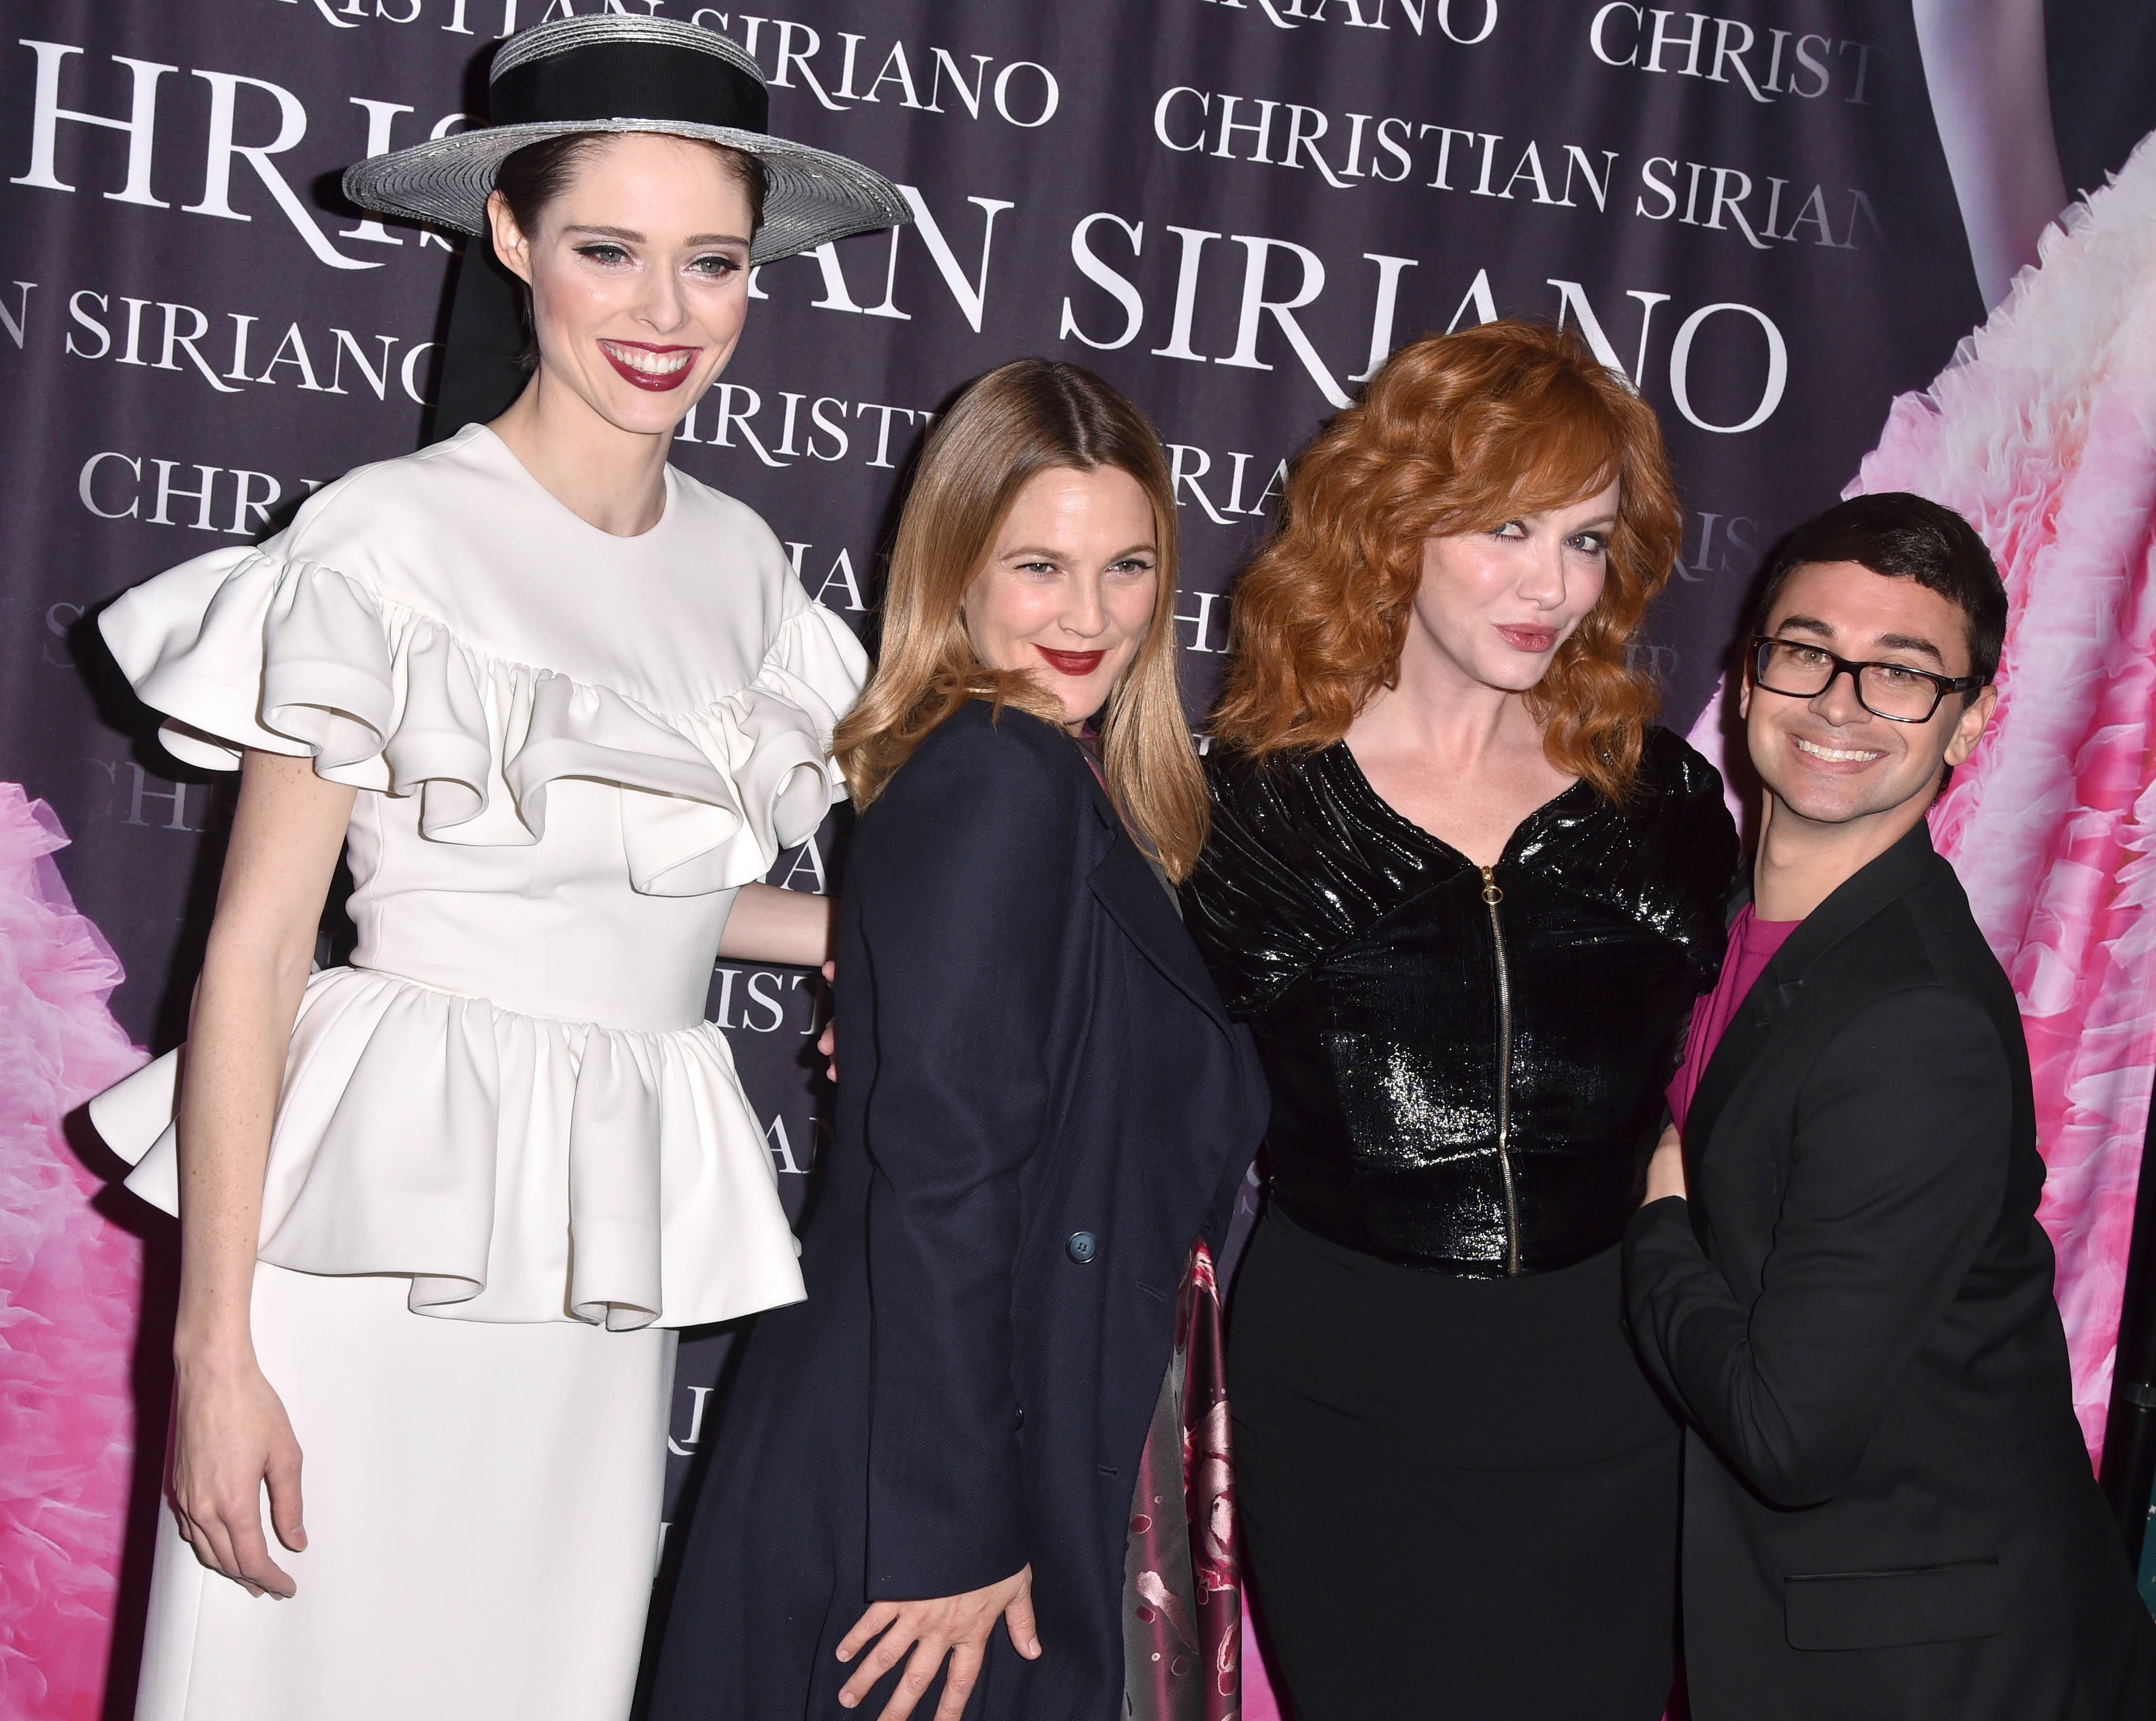 Coco Rocha, Drew Barrymore, Christina Hendricks, Christian Siriano'Dresses to Dream About' book launch, Arrivals, New York, USA - 08 Nov 2017